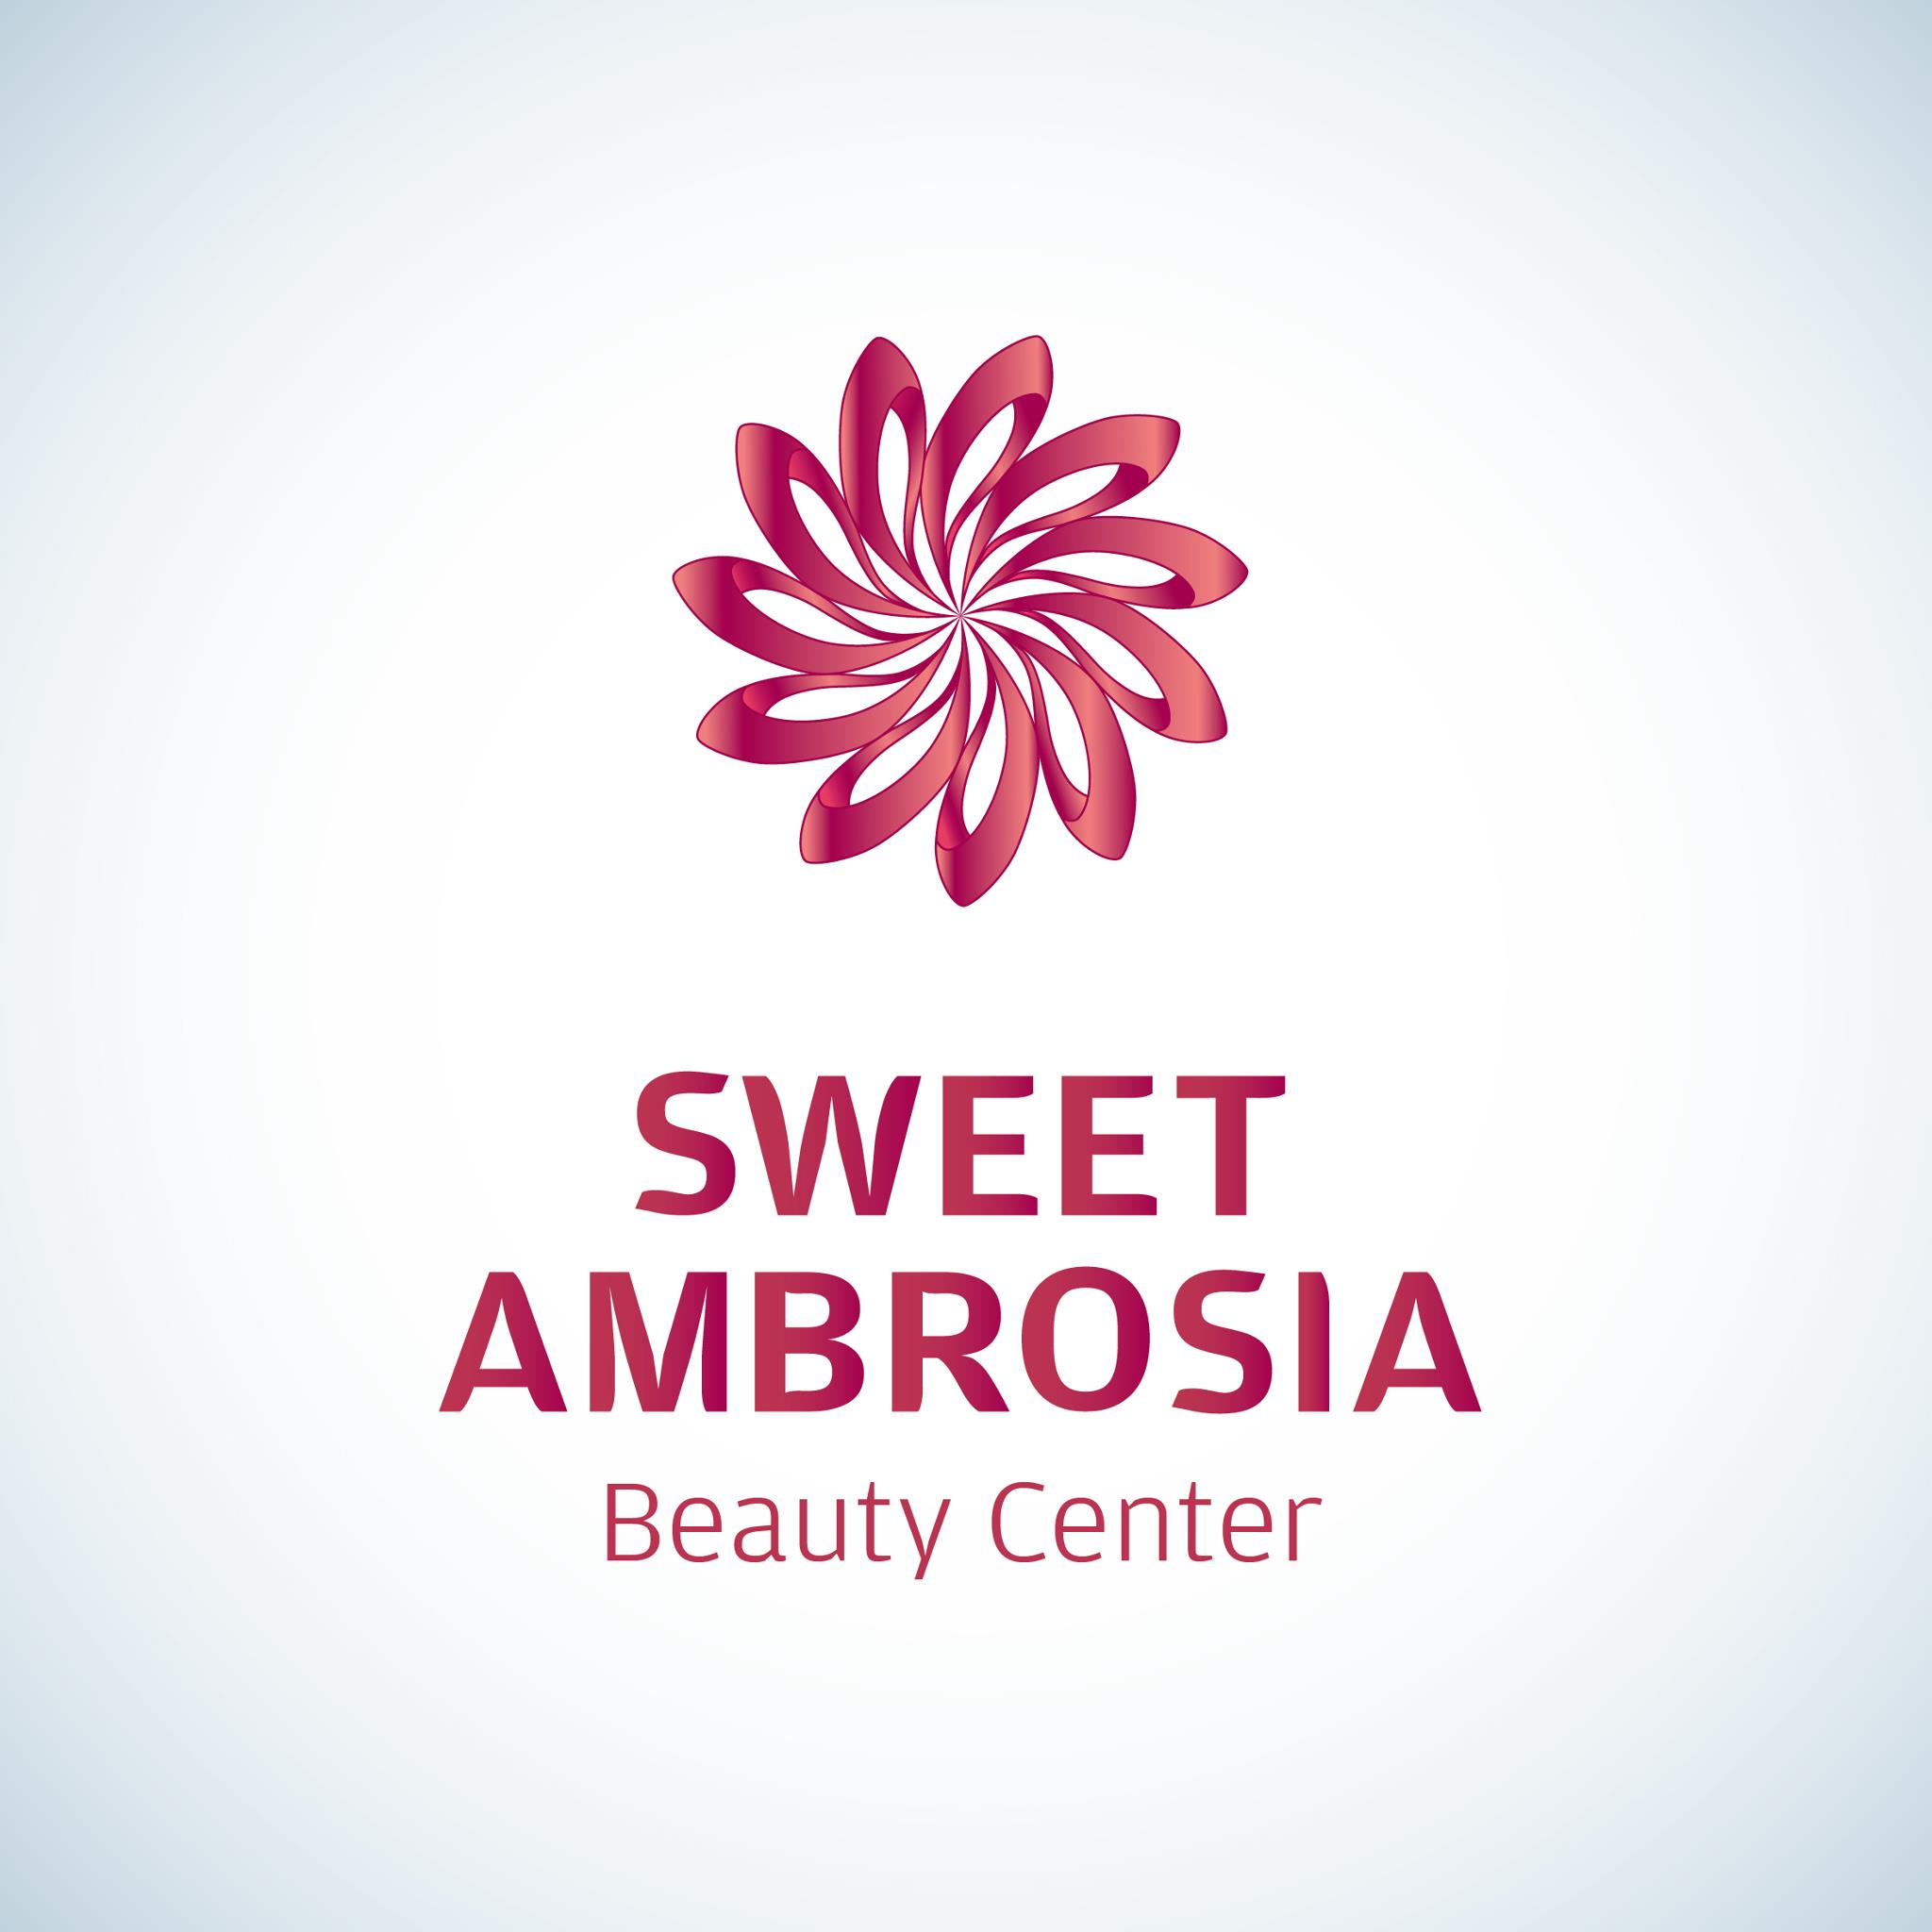 Sweet Ambrosia Beauty Center